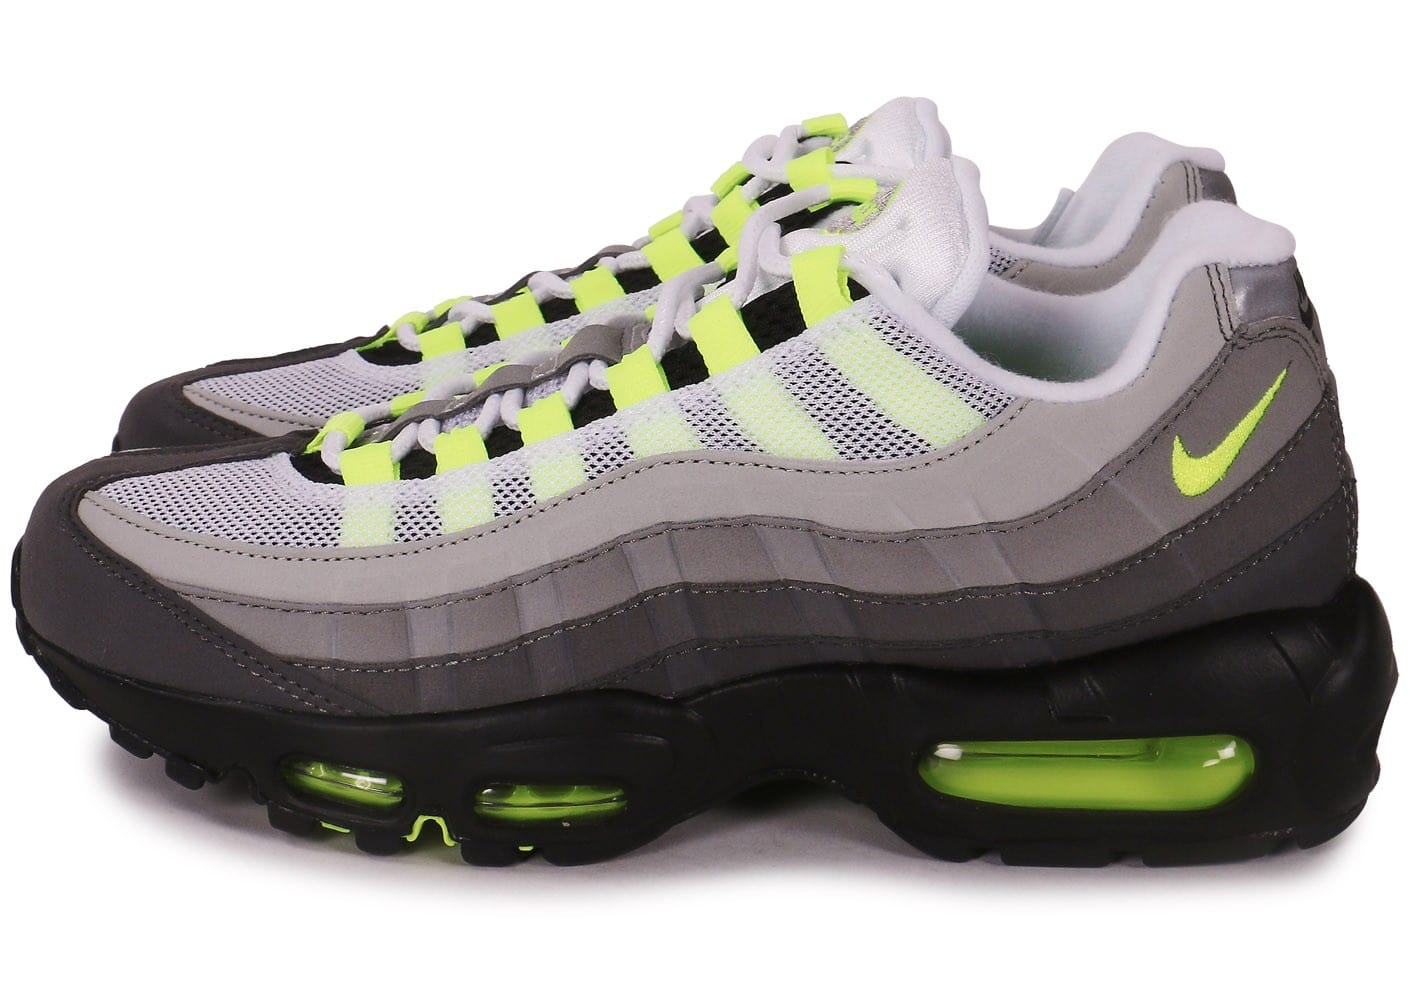 nike air max 95 og chaussures homme chausport. Black Bedroom Furniture Sets. Home Design Ideas